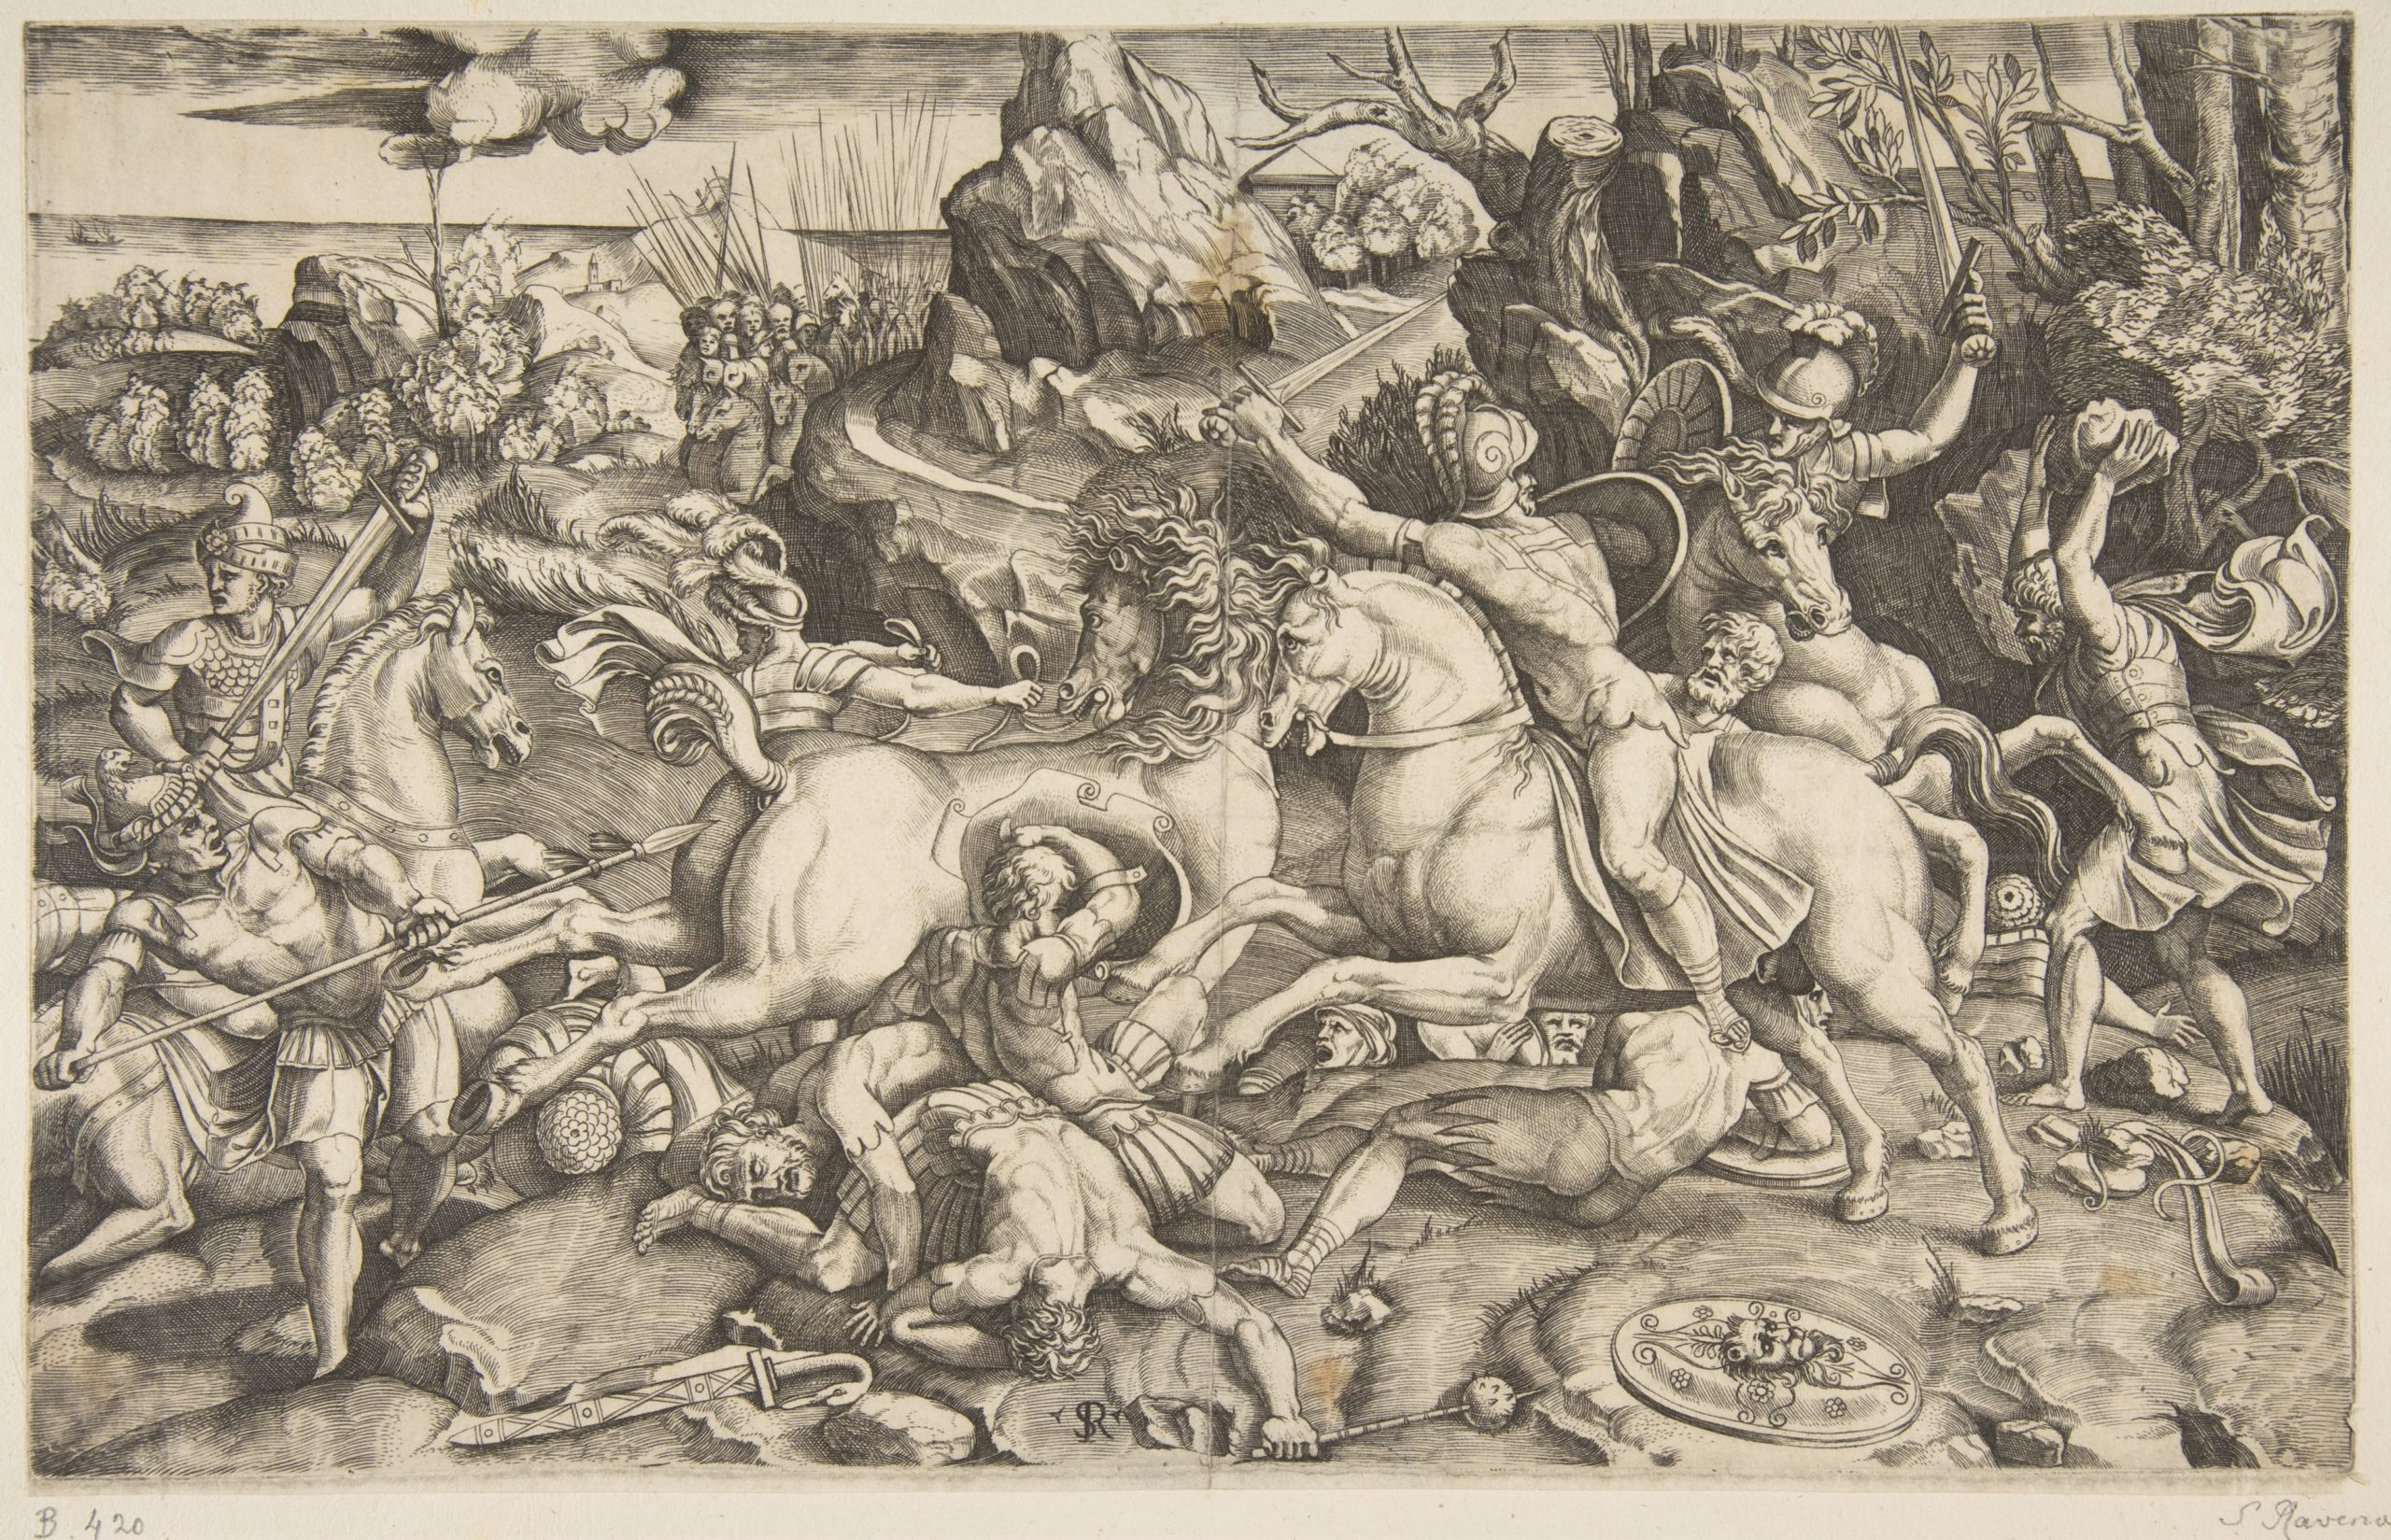 Battle scene in a landscape, after Raphael's designs for the fresco of 'The Battle of the Milvian Bridge', cr. 1520, Marco Dente, Italy